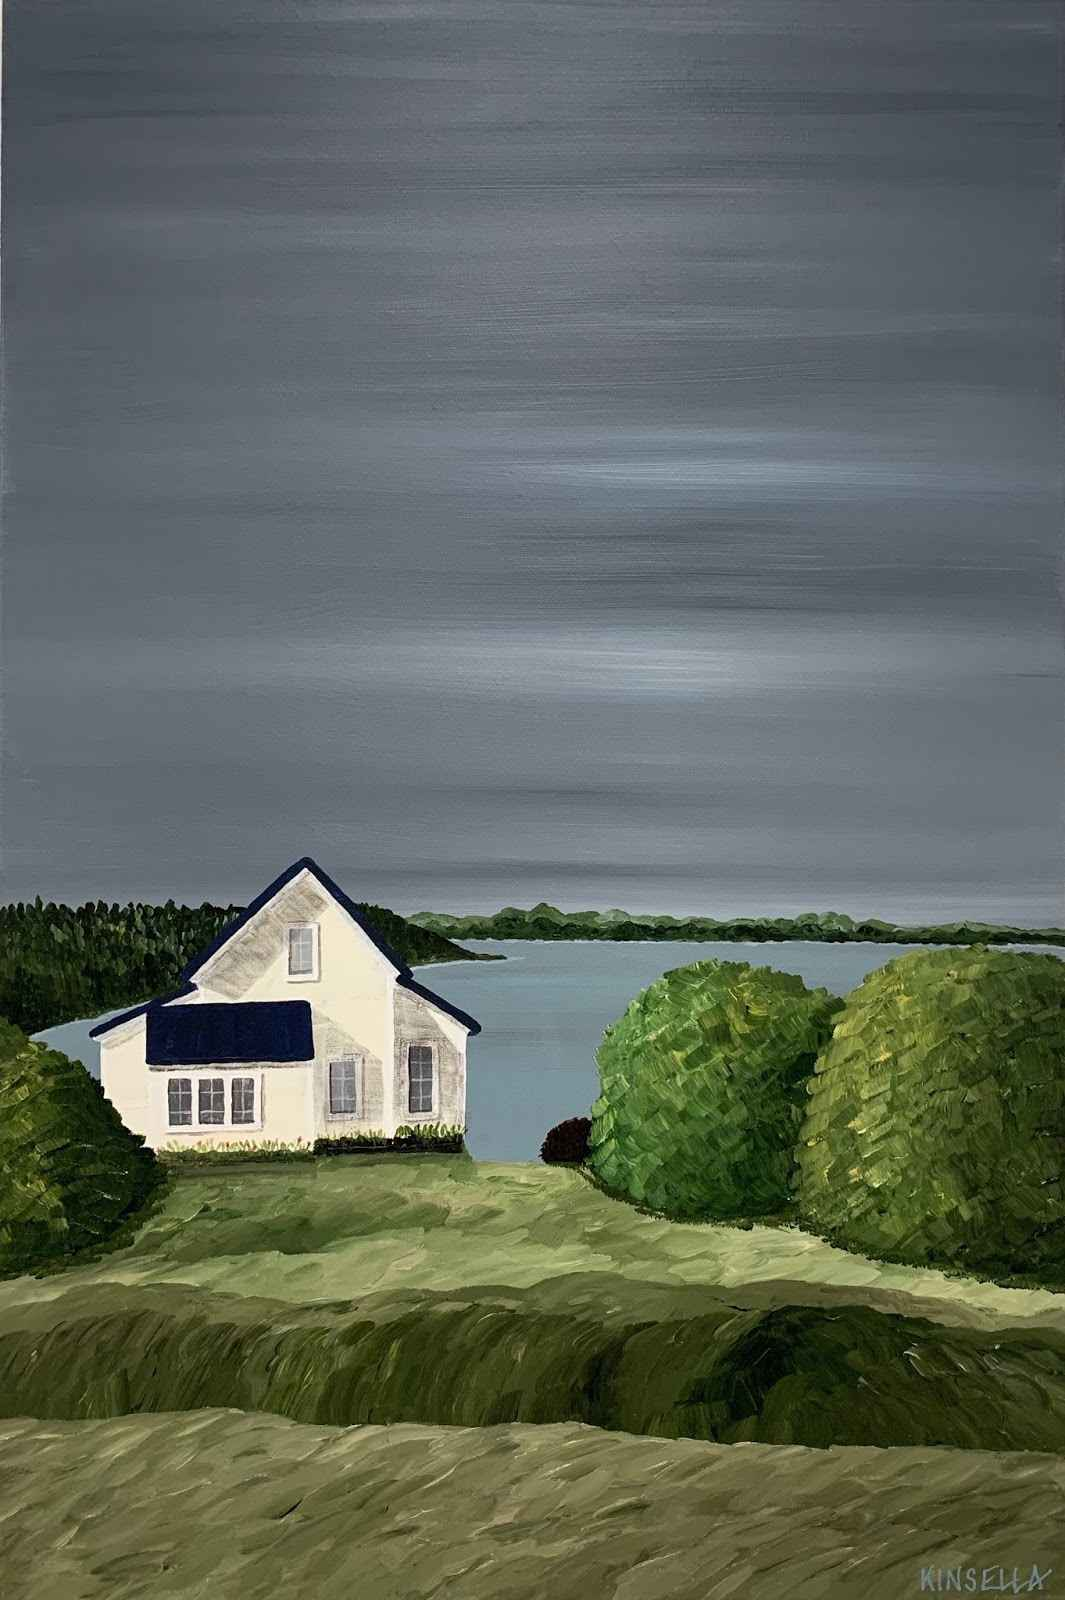 Cottage on Quiet Lake  by  Susan Kinsella